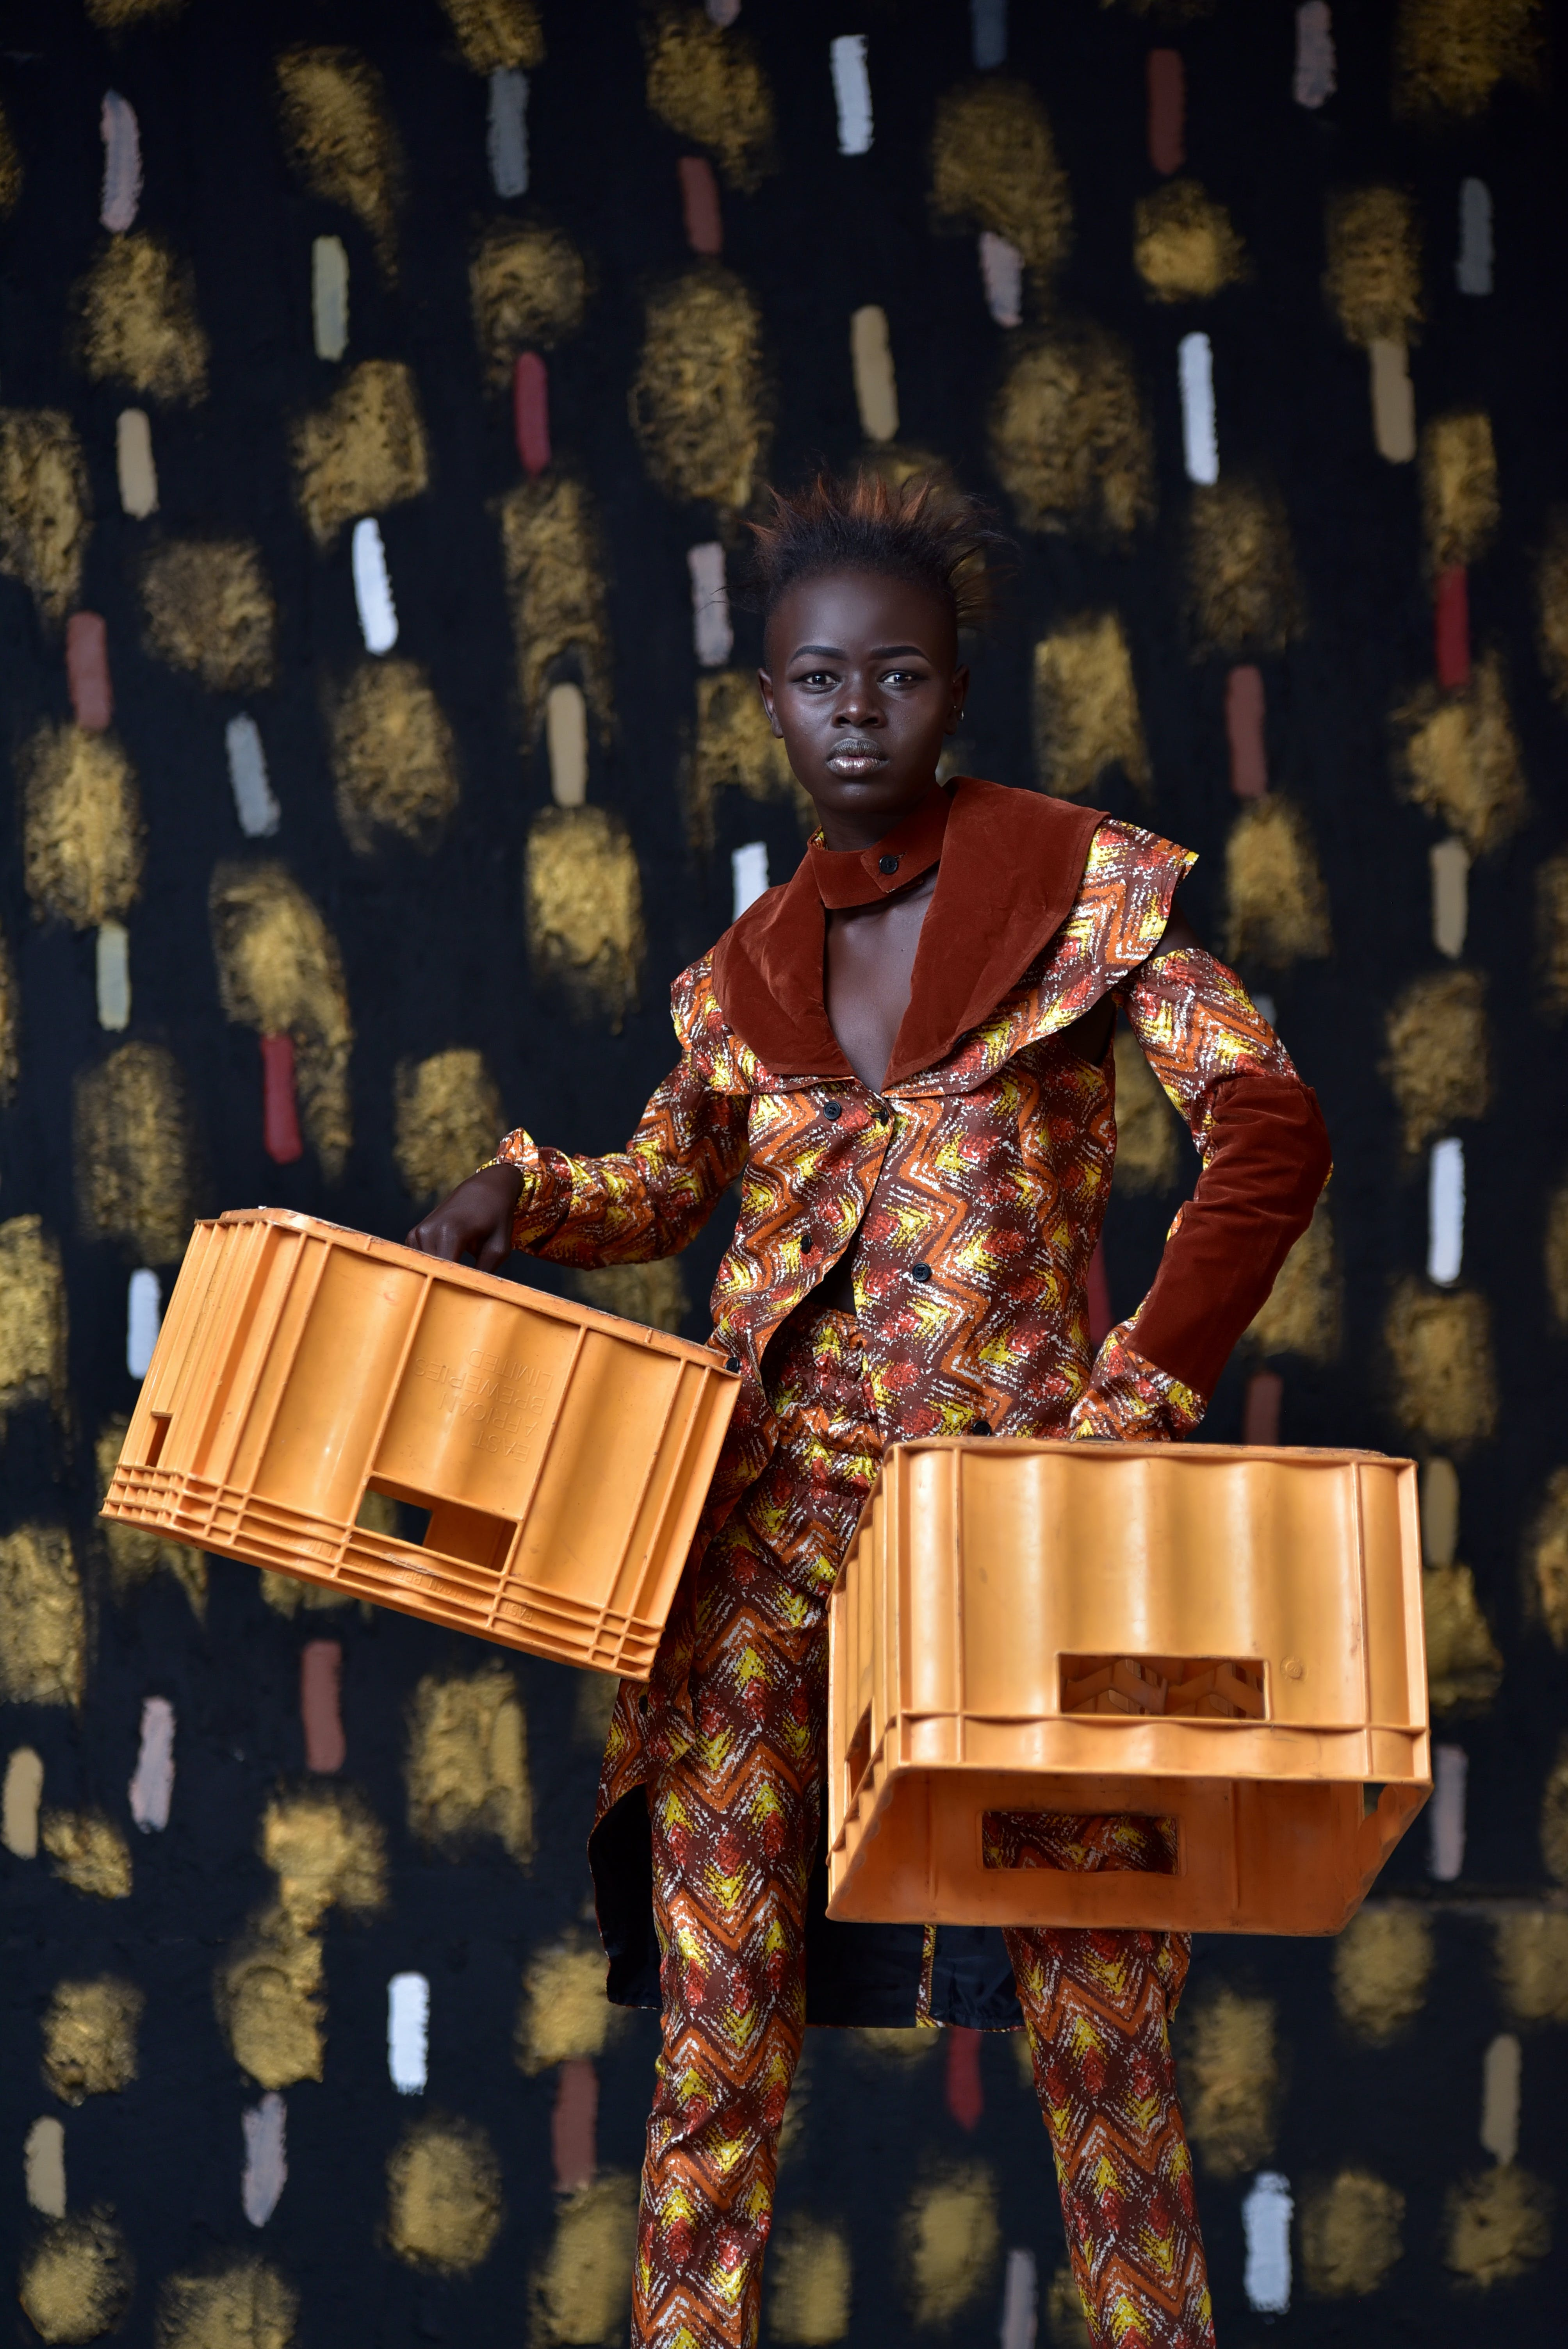 Woman Carrying Crates